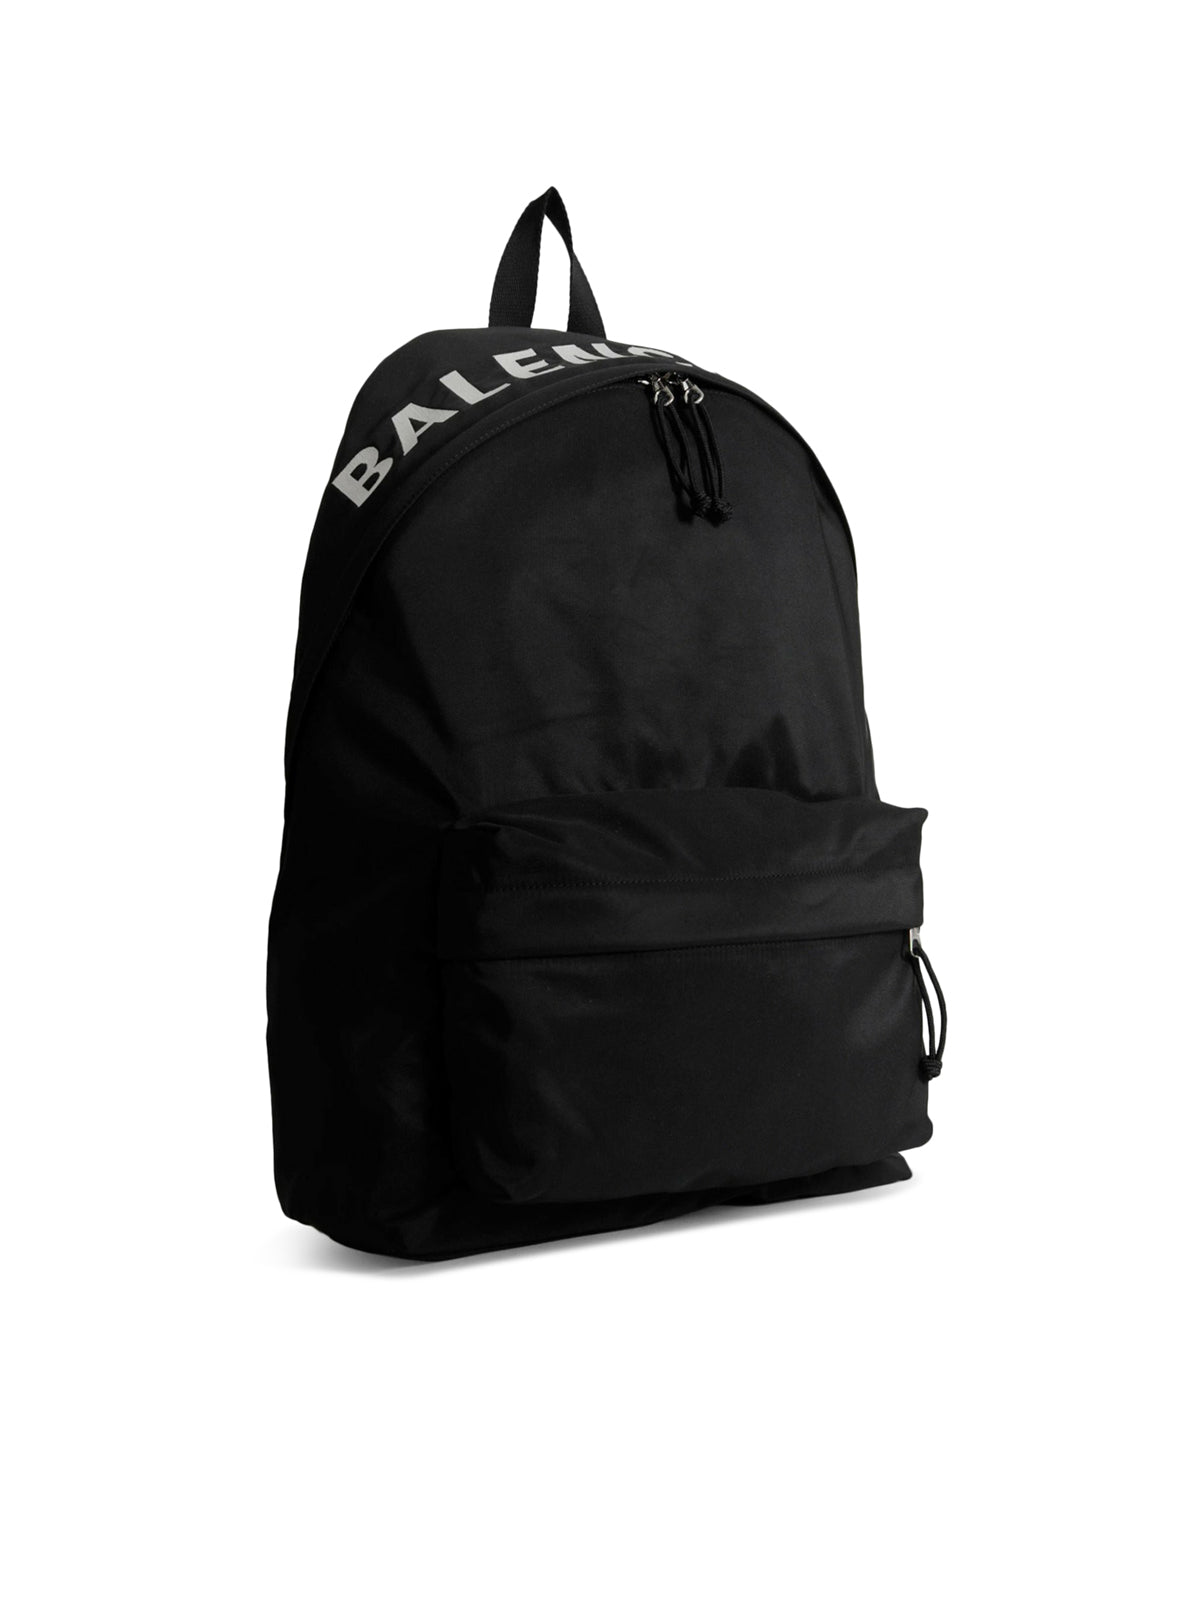 Black wheel backpack